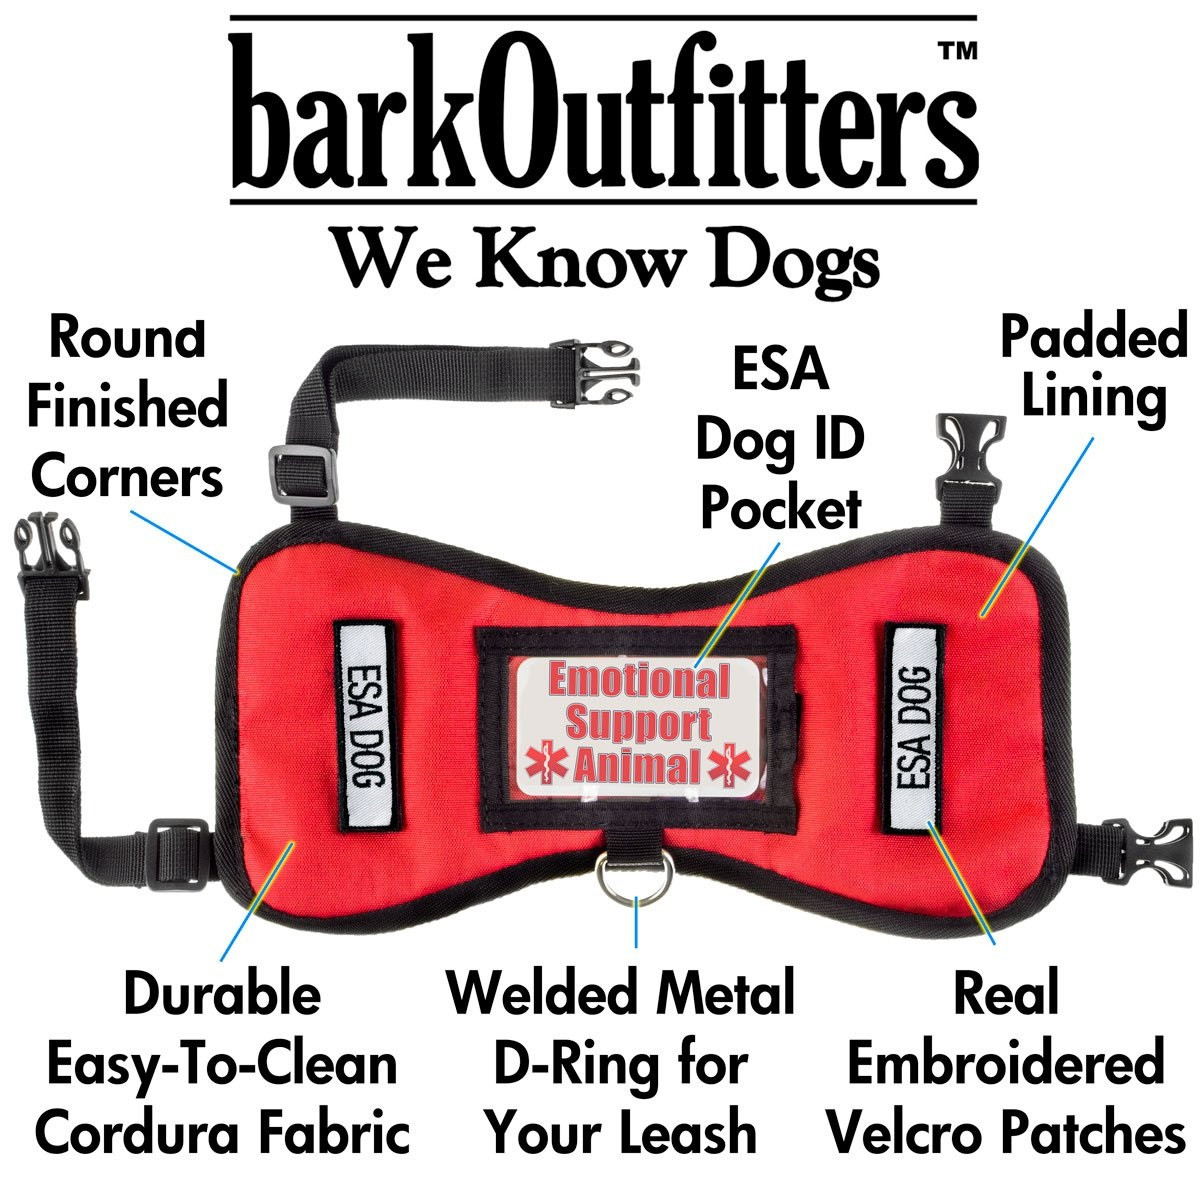 Barkoufitters Quot Leader Quot Emotional Support Animal Vest